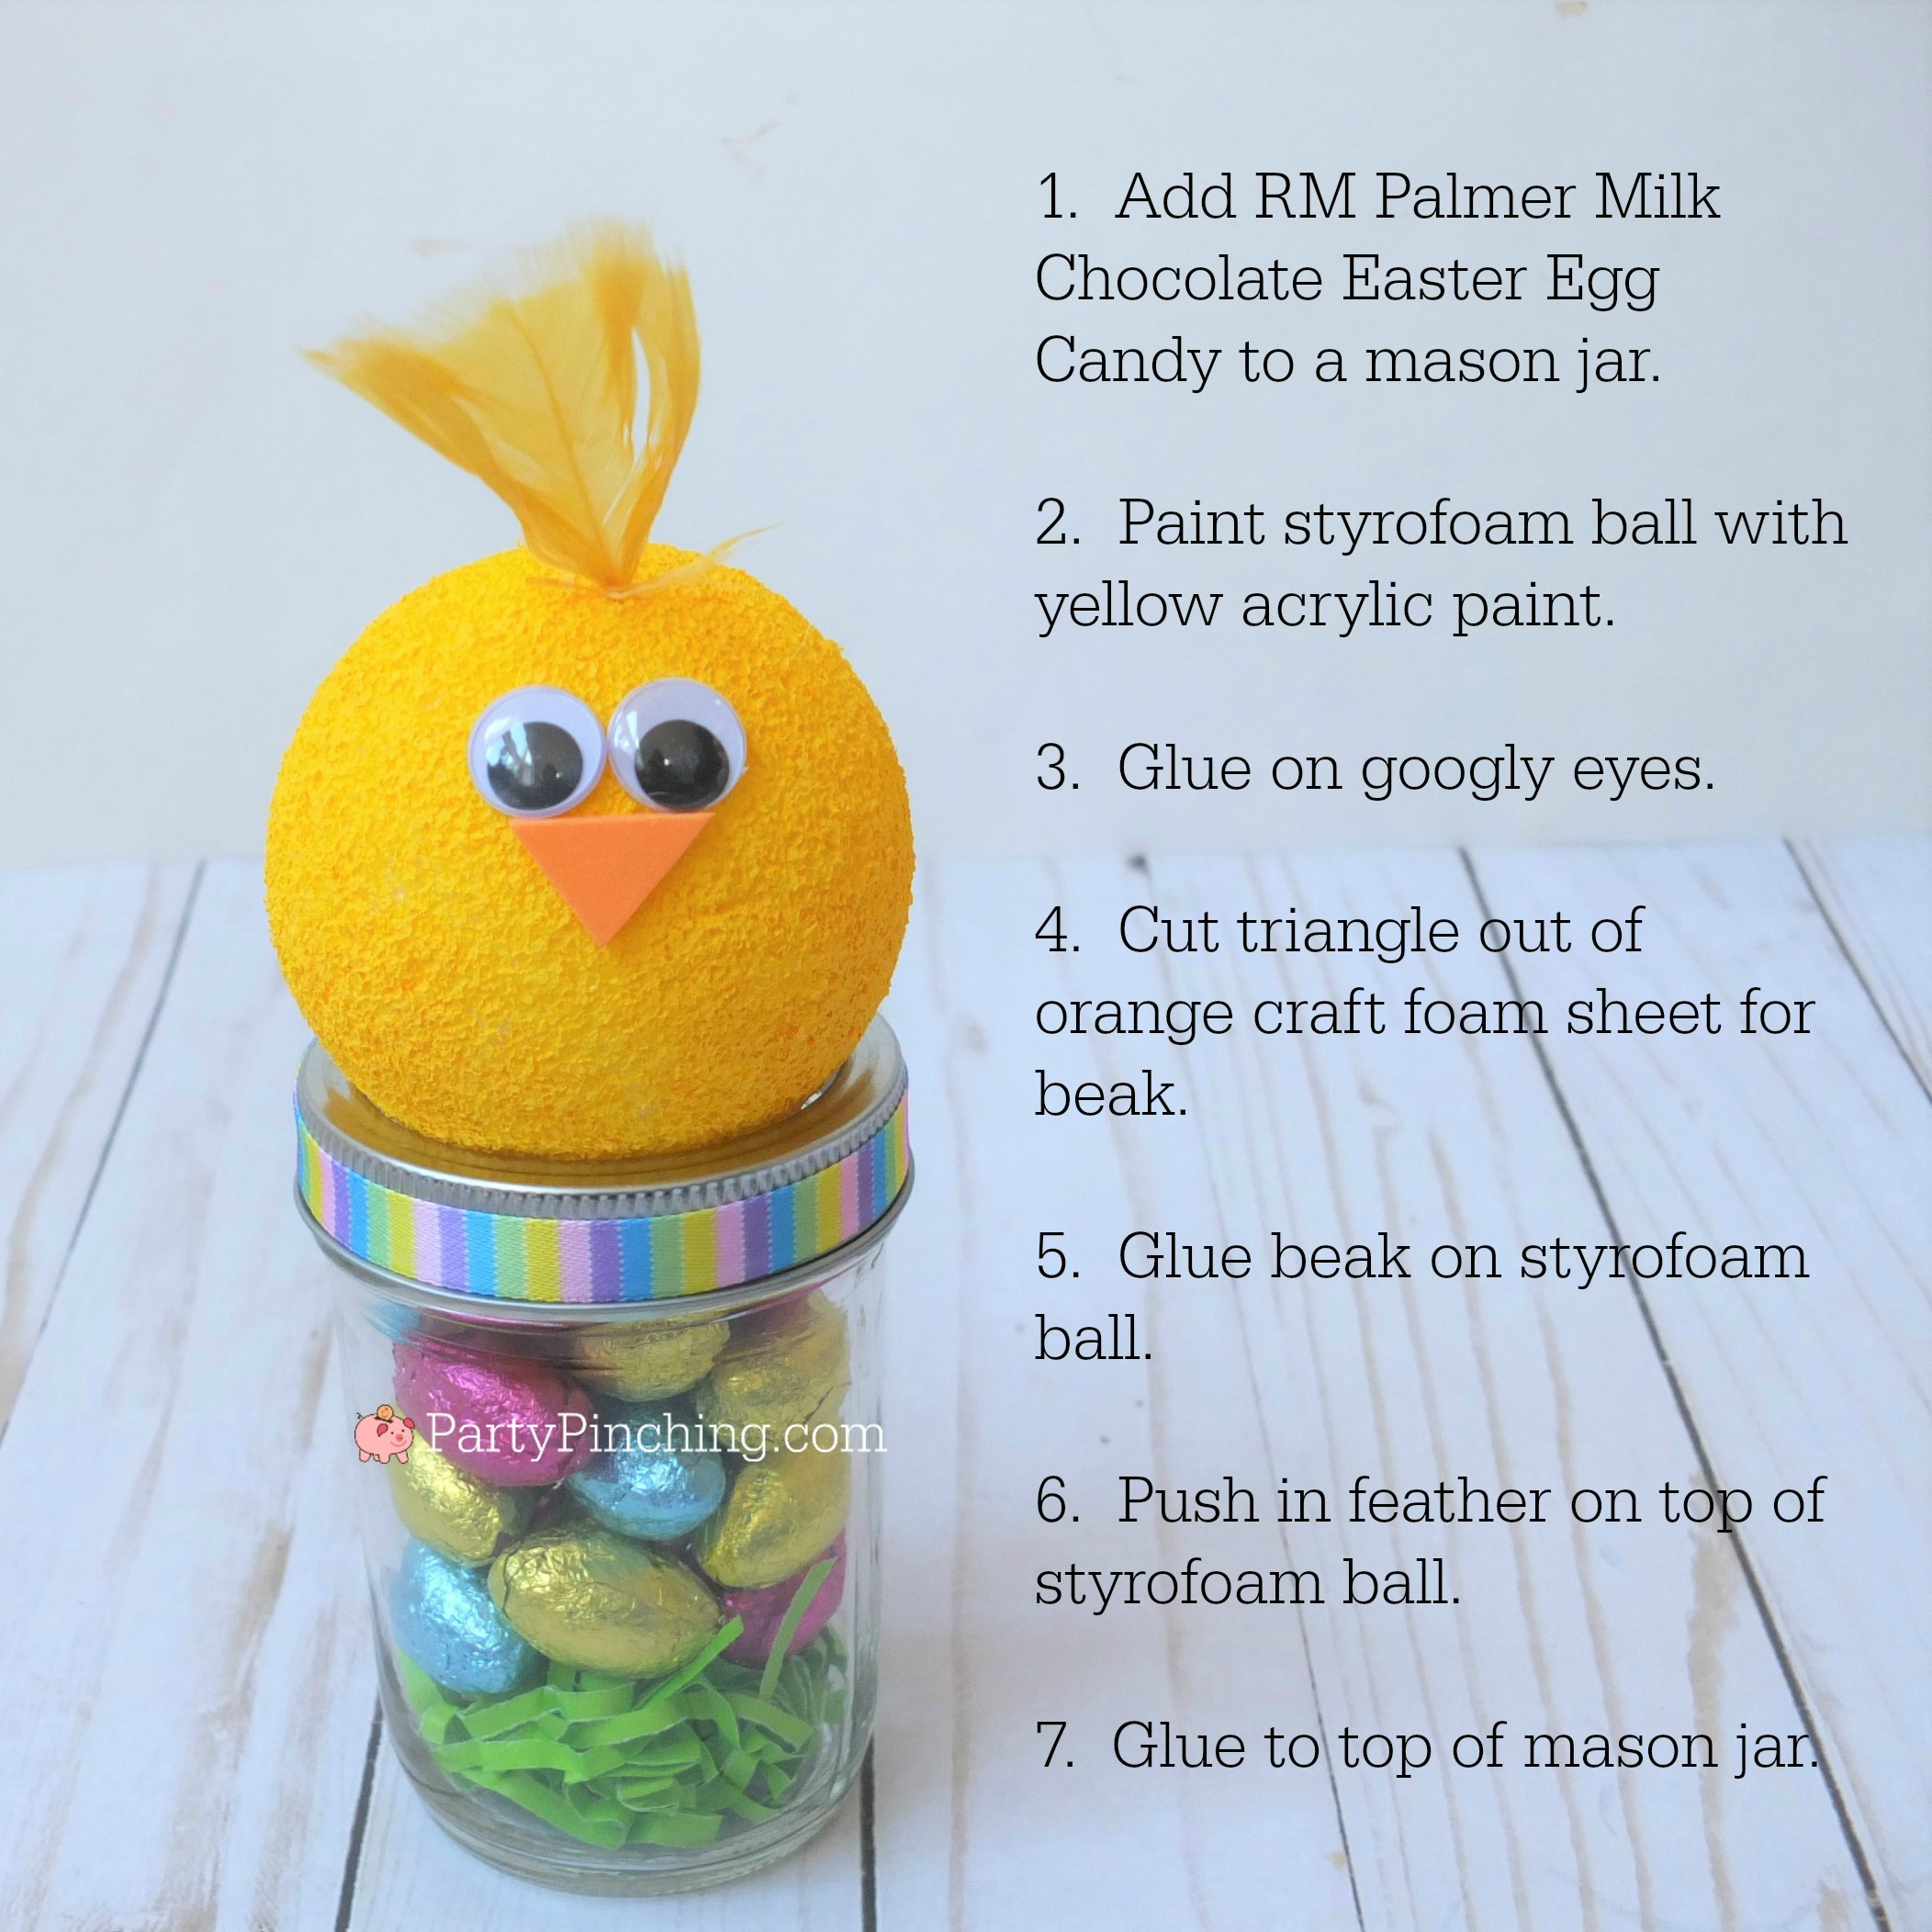 Chick Easter candy mason jar craft, Cute Easter jar craft animals bunny chick lamb, fun and easy Easter craft for kids, Easter candy favor, RM Palmer candy